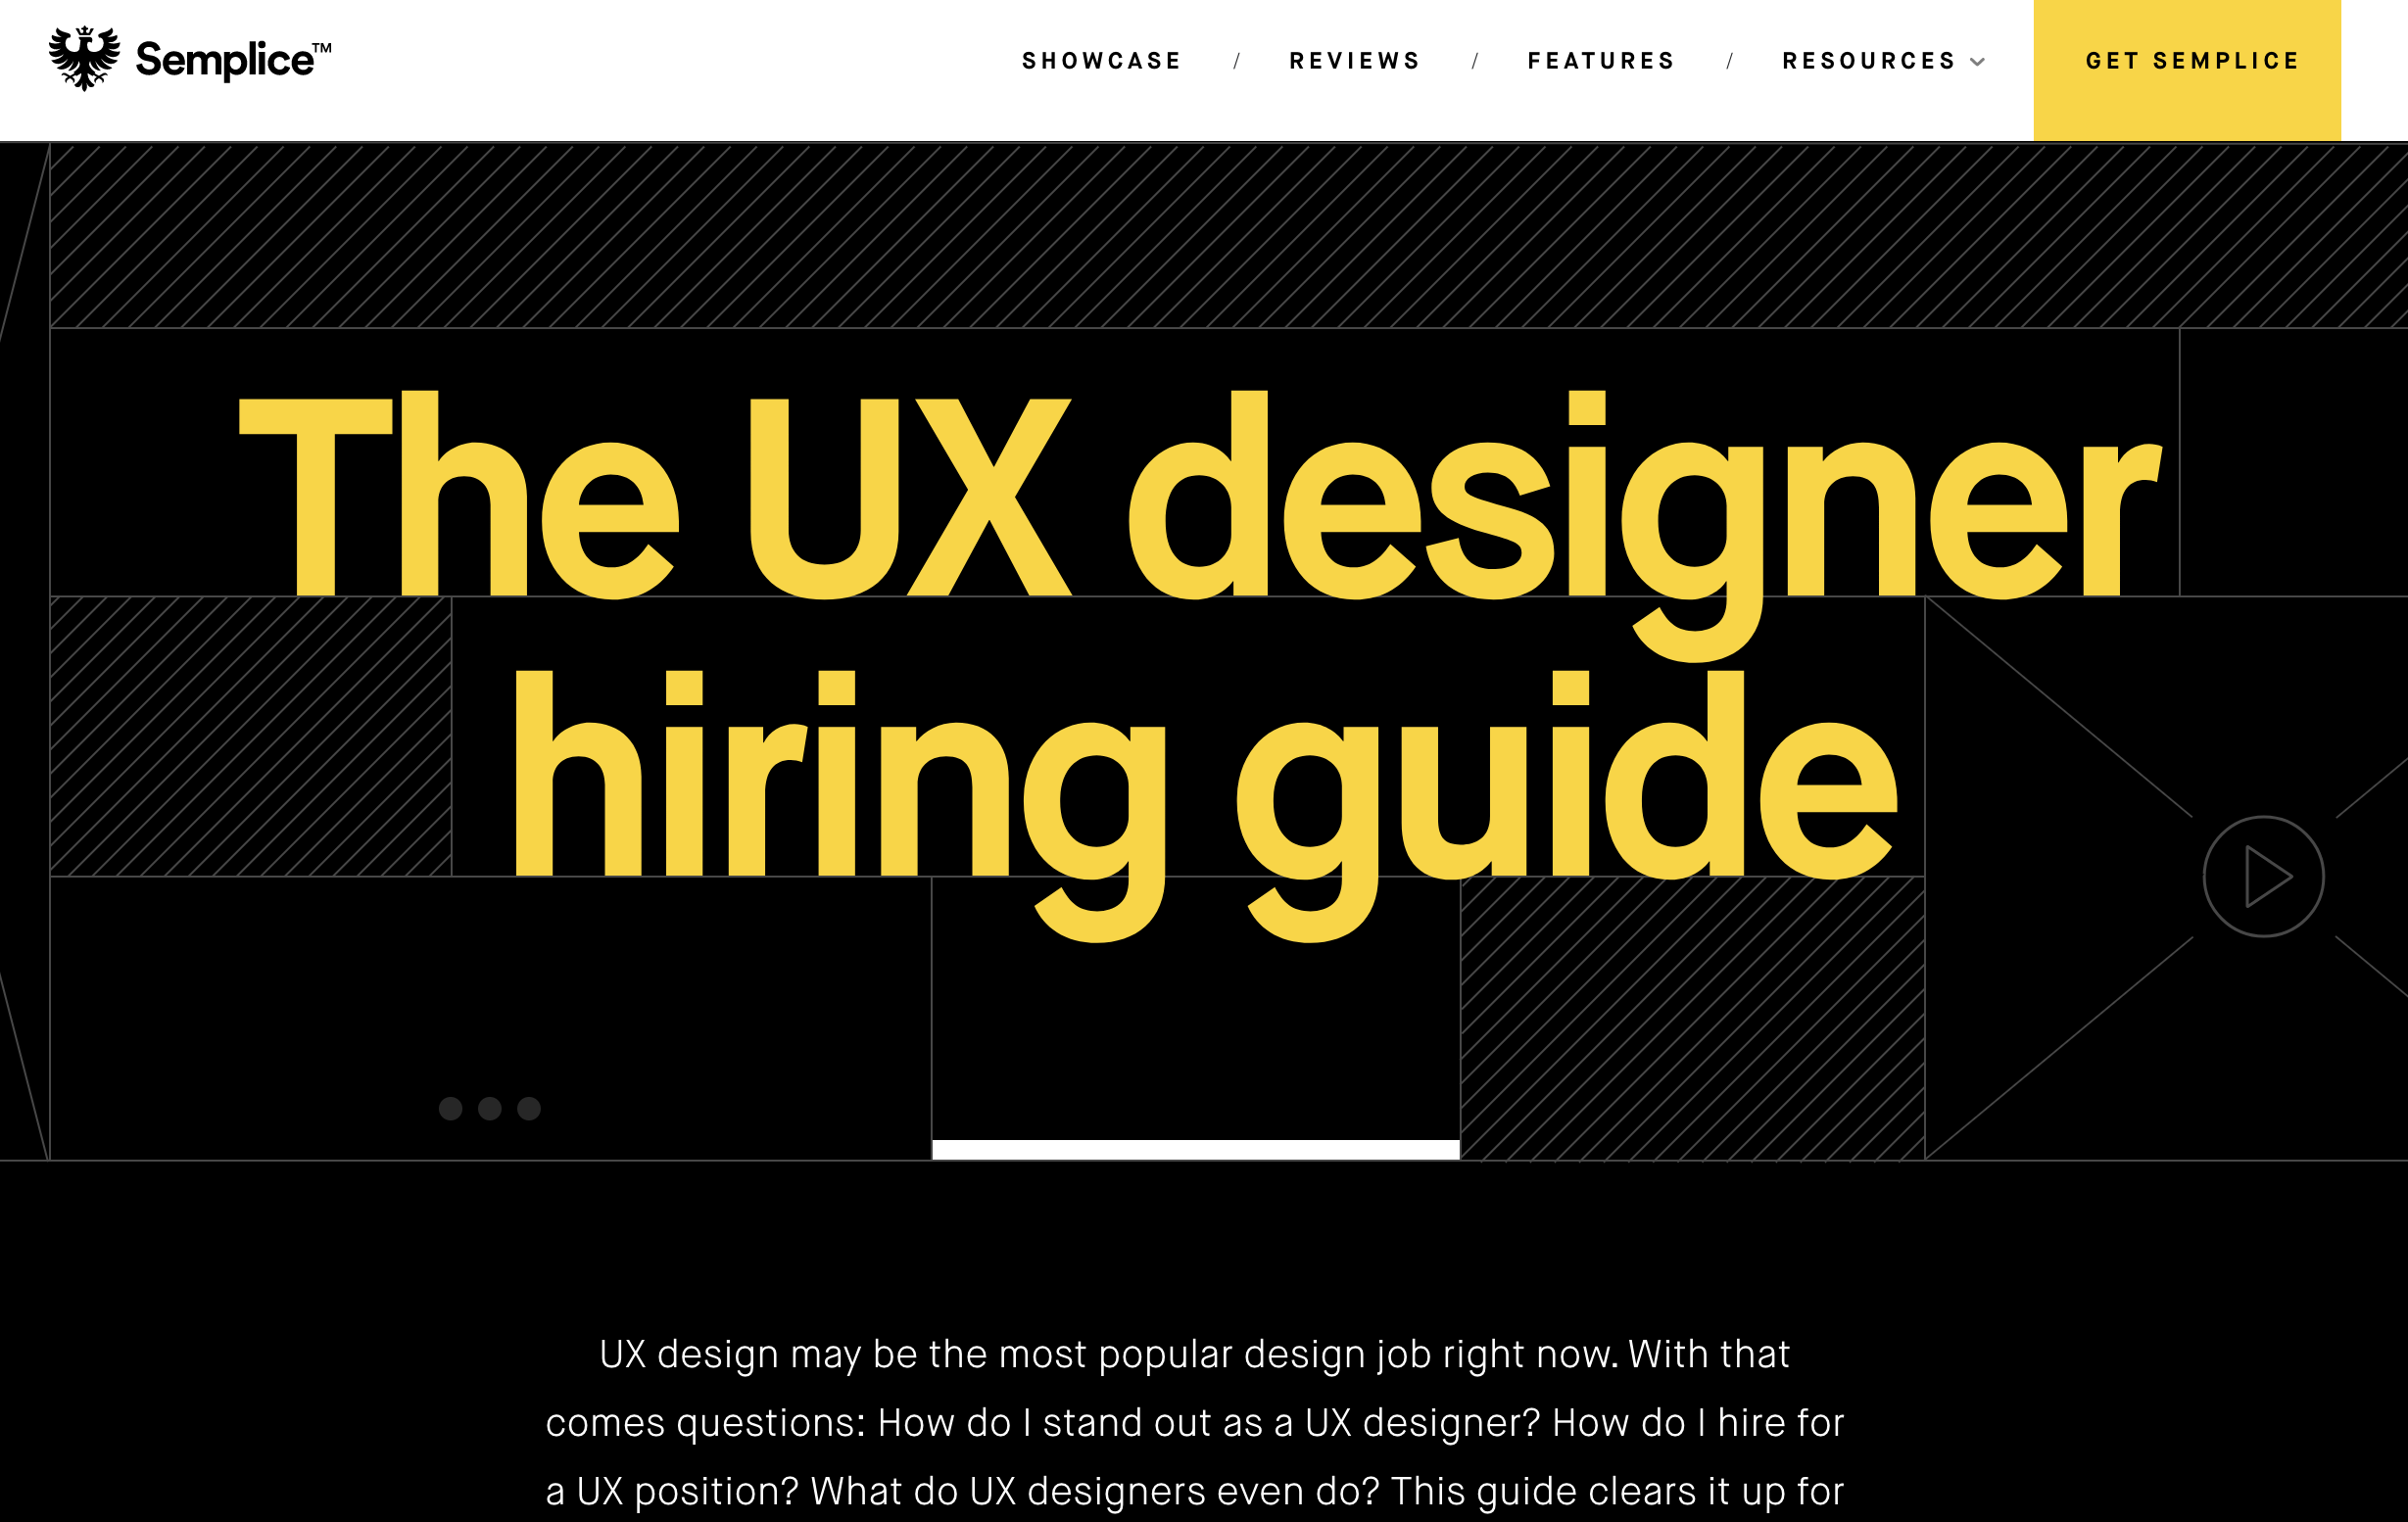 How to hire a UX designer or get a UX design job